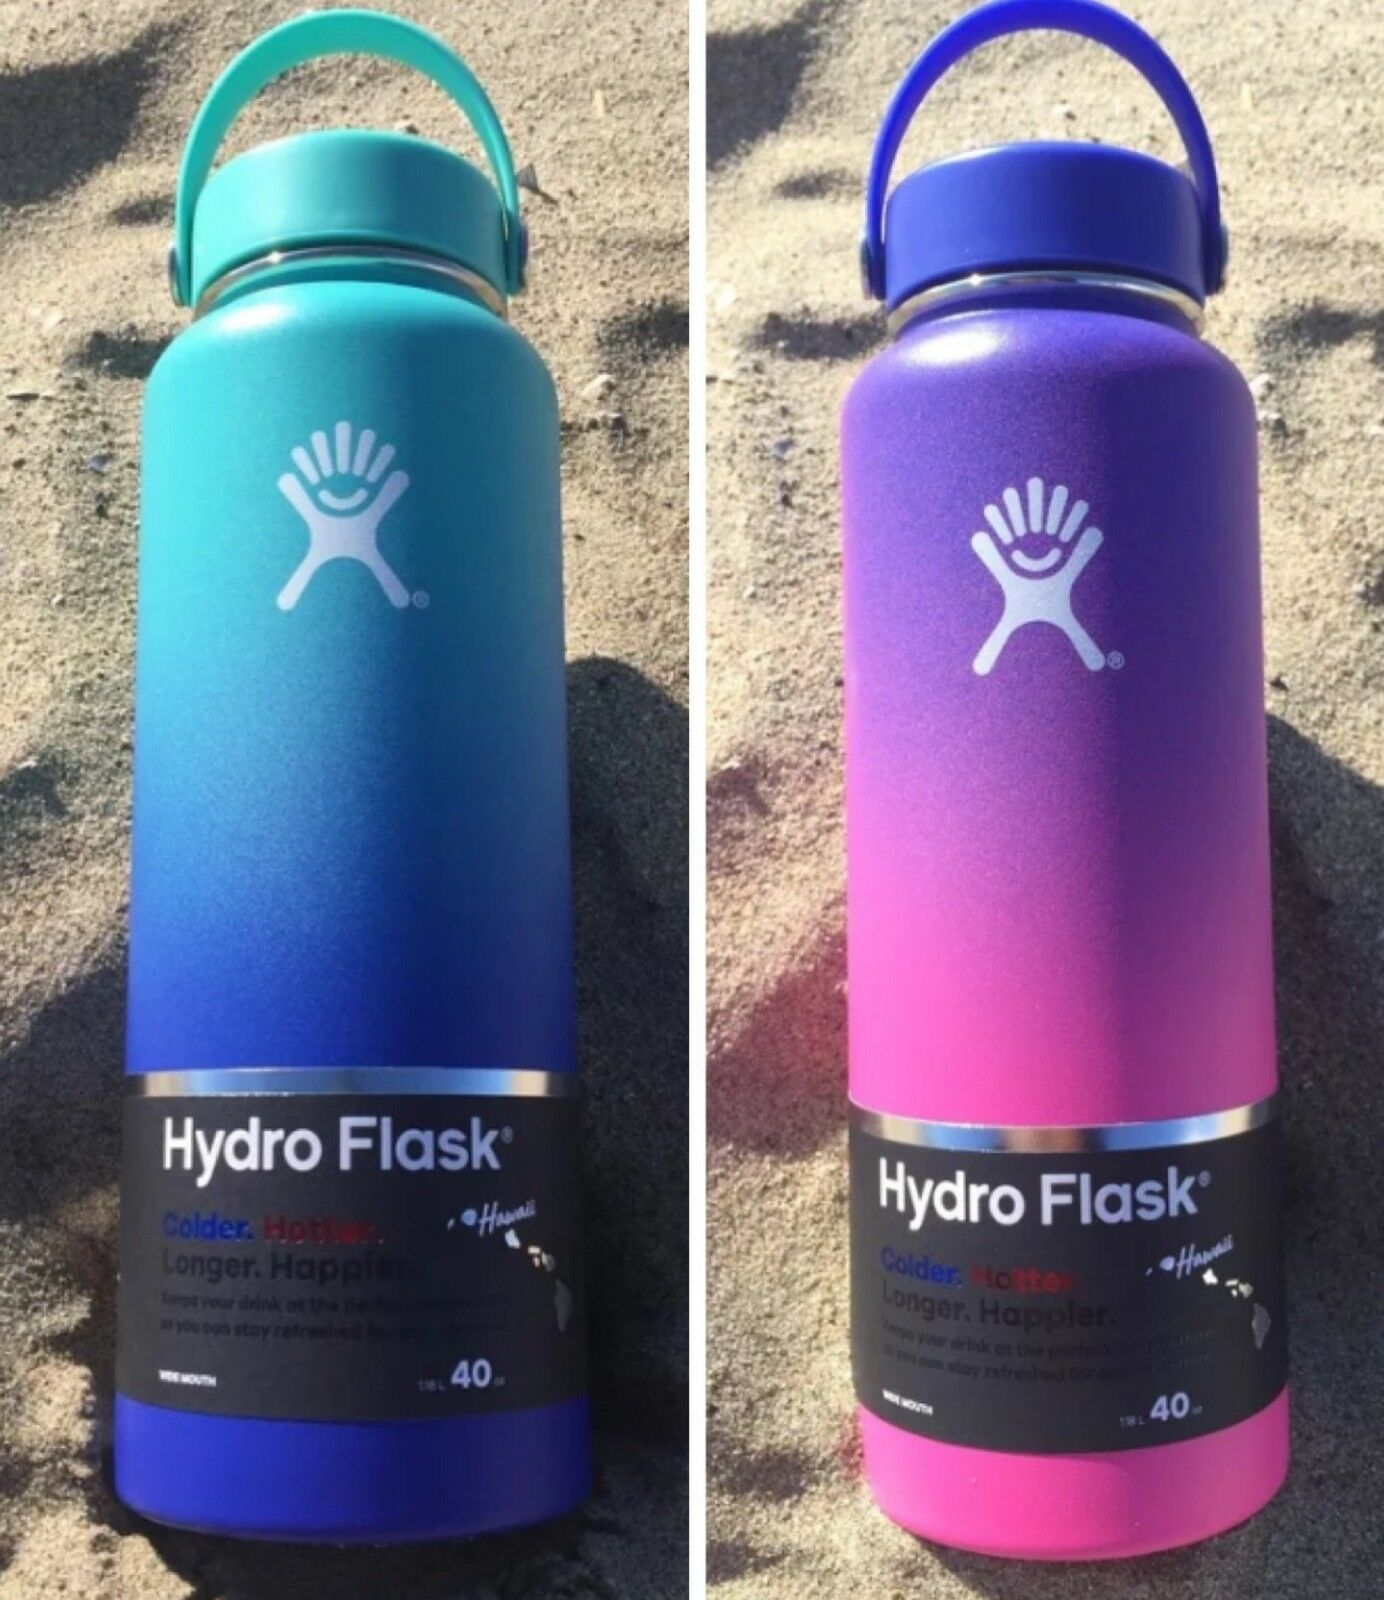 NEW Hydro Flask Ombre Limited Edition Hawaii Moana blu and Anuenue viola 40 oz